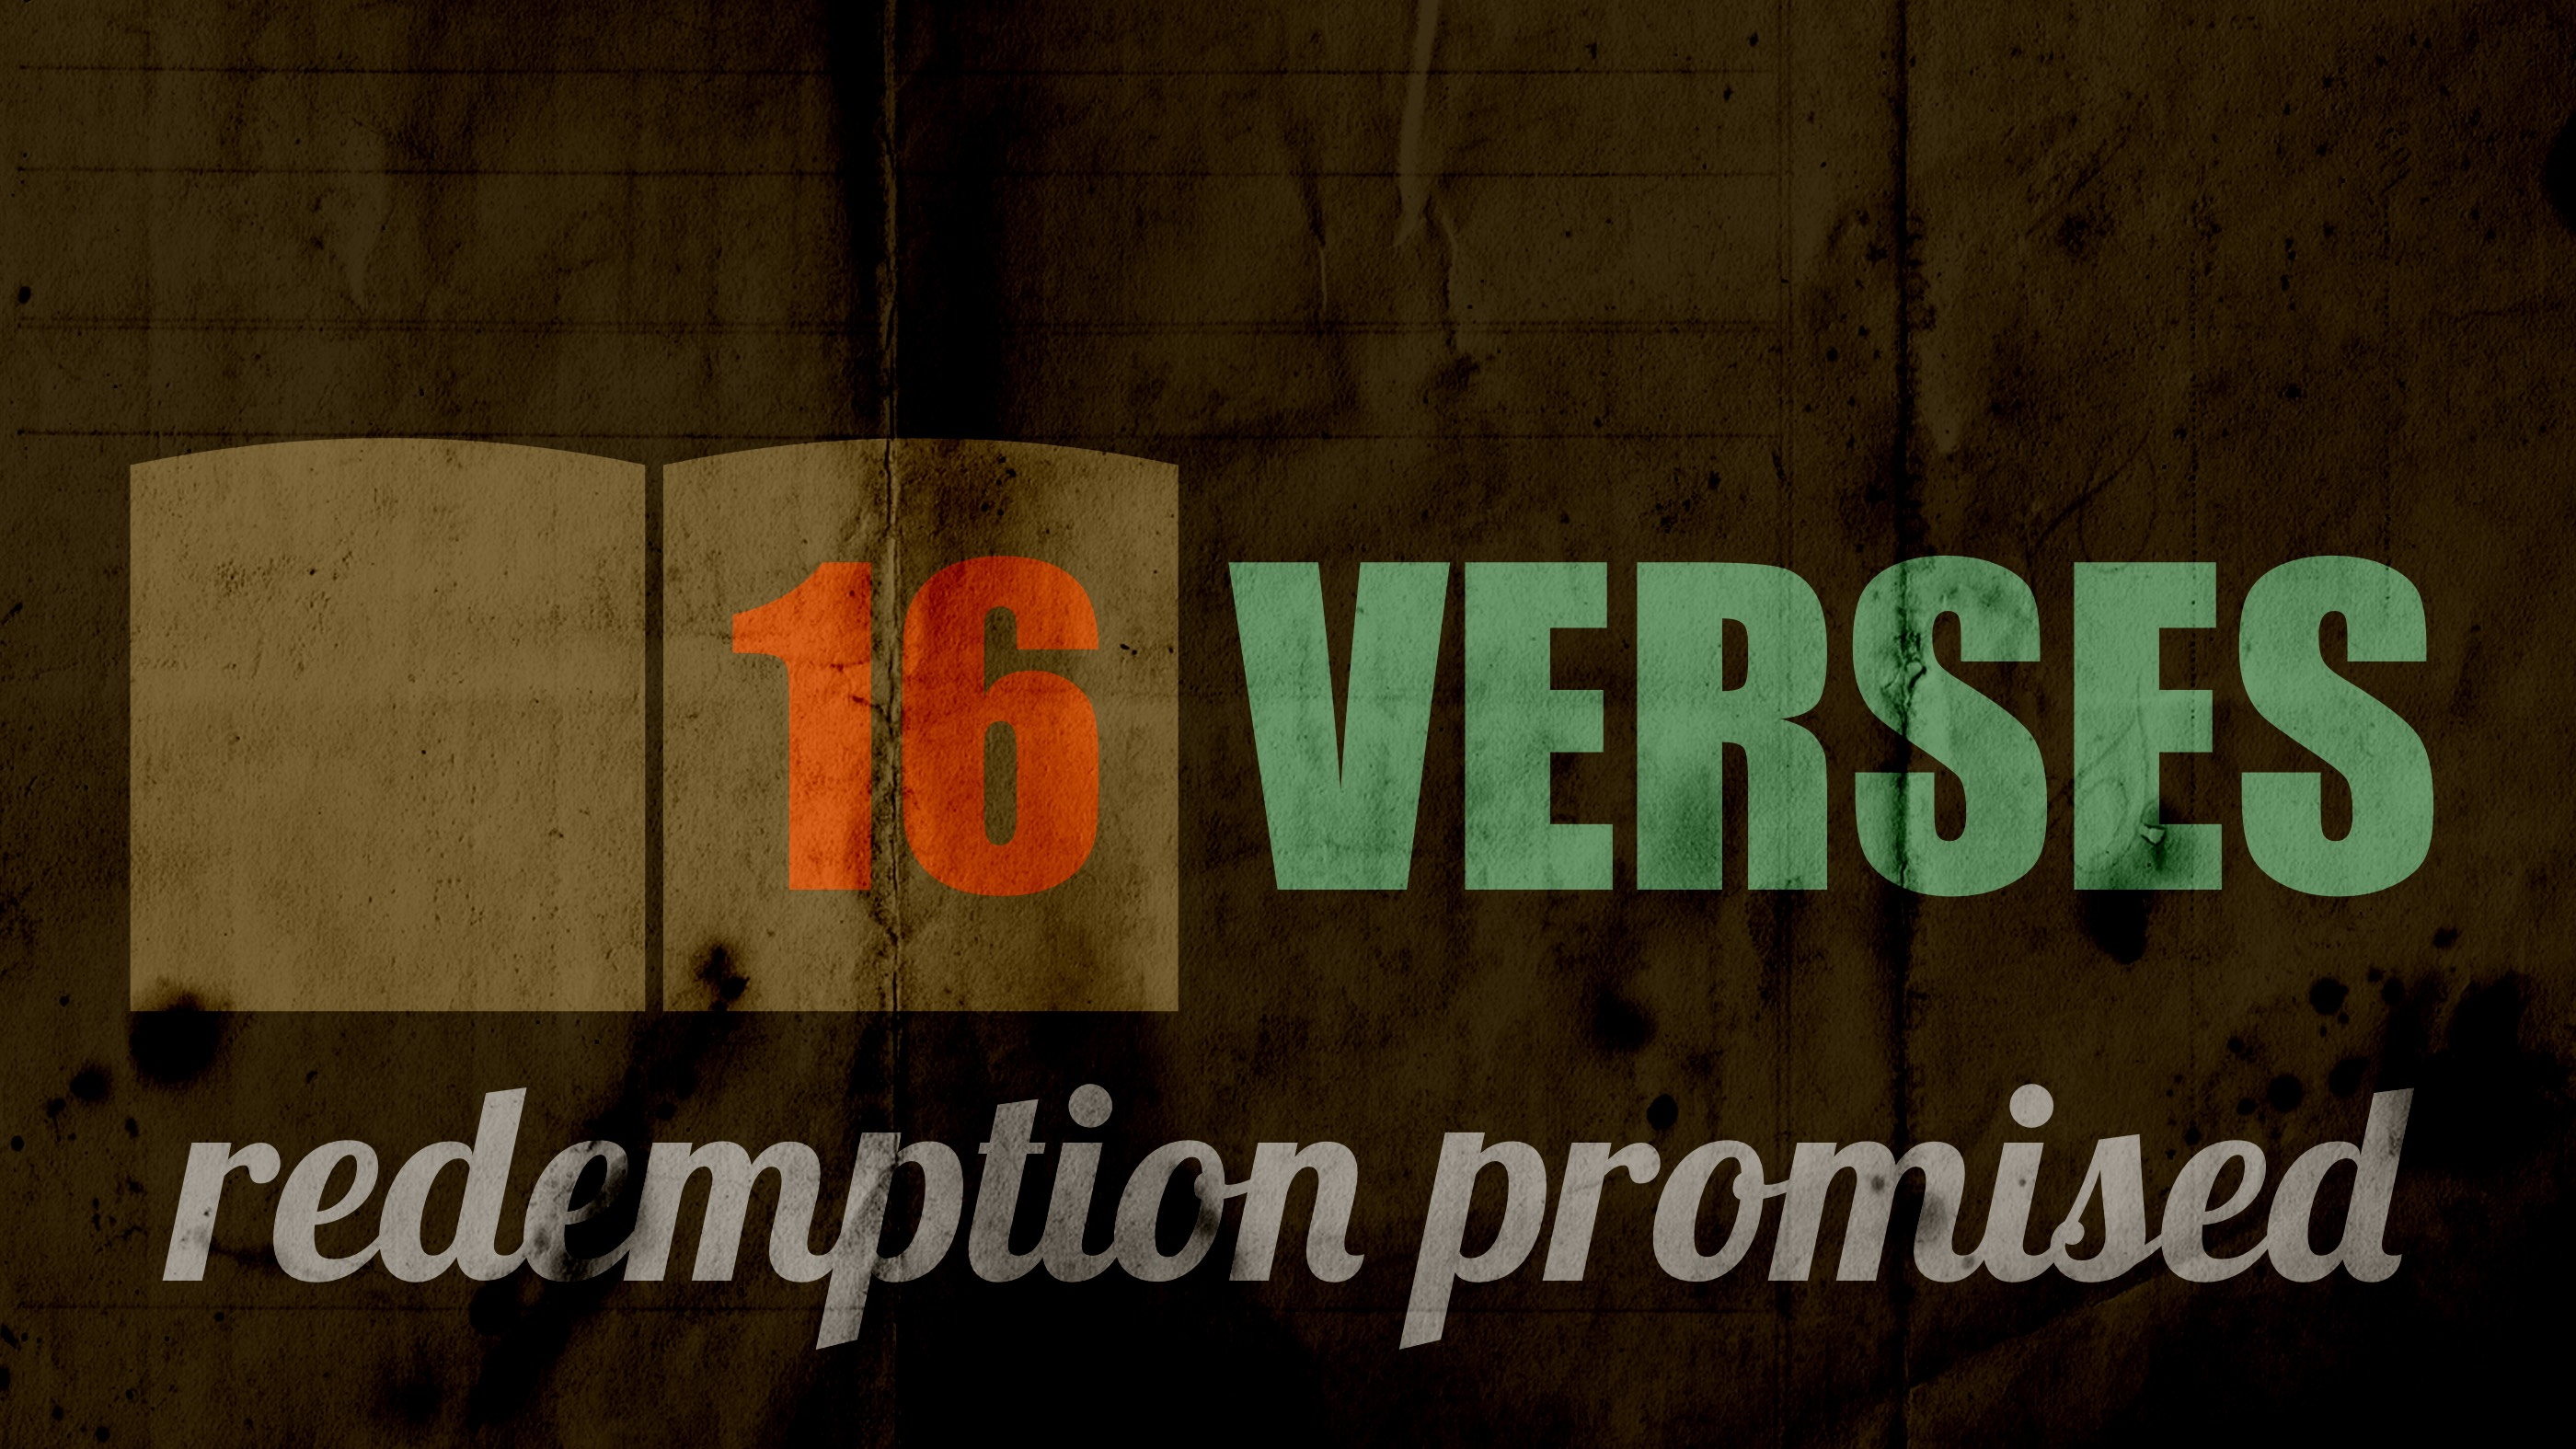 16 VERSES redemption promised